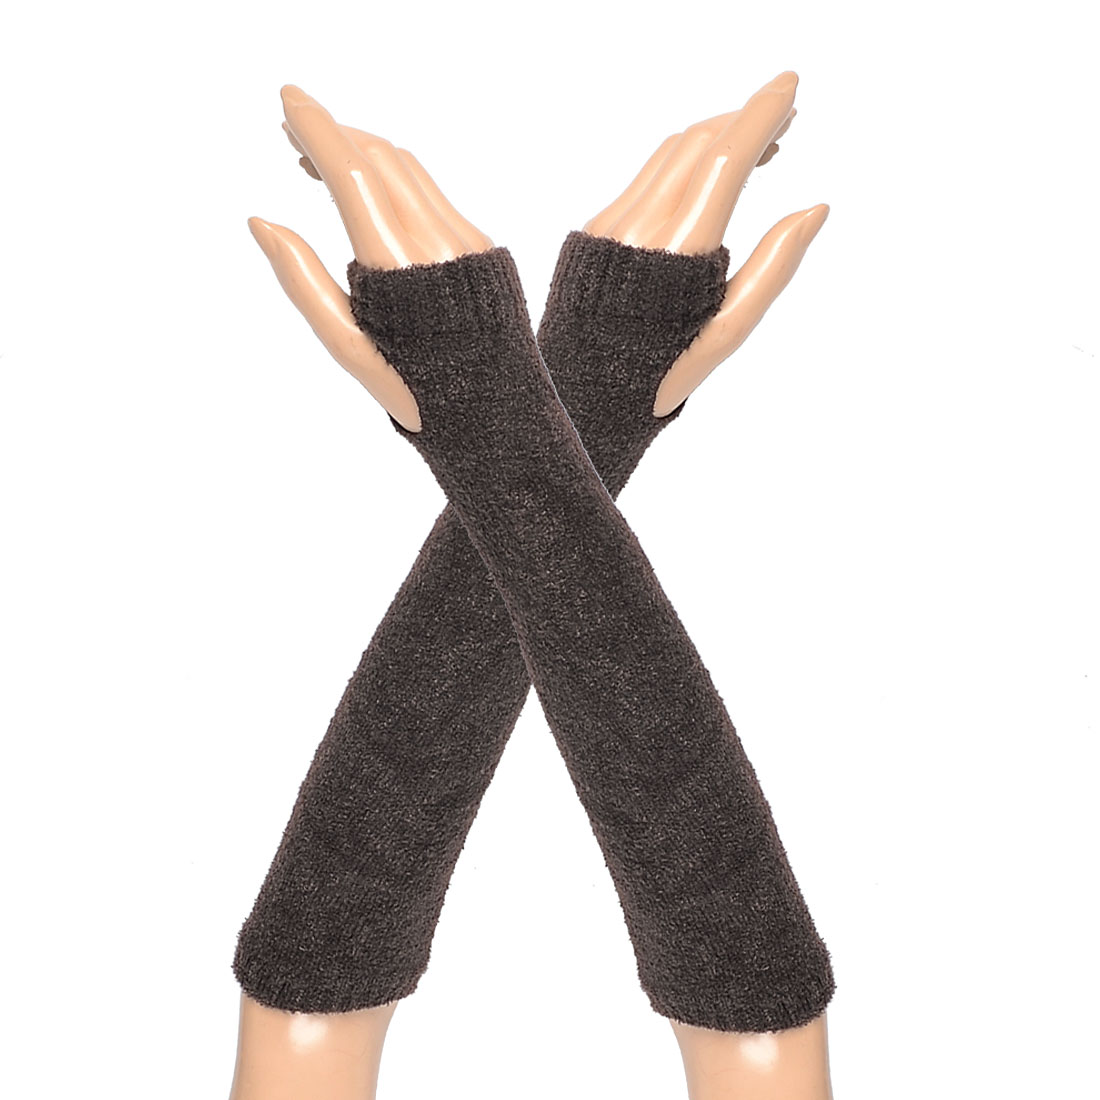 Lady Soft Fleece Thumb Hole Fingerless Gloves Elbow Warmers Coffee Color